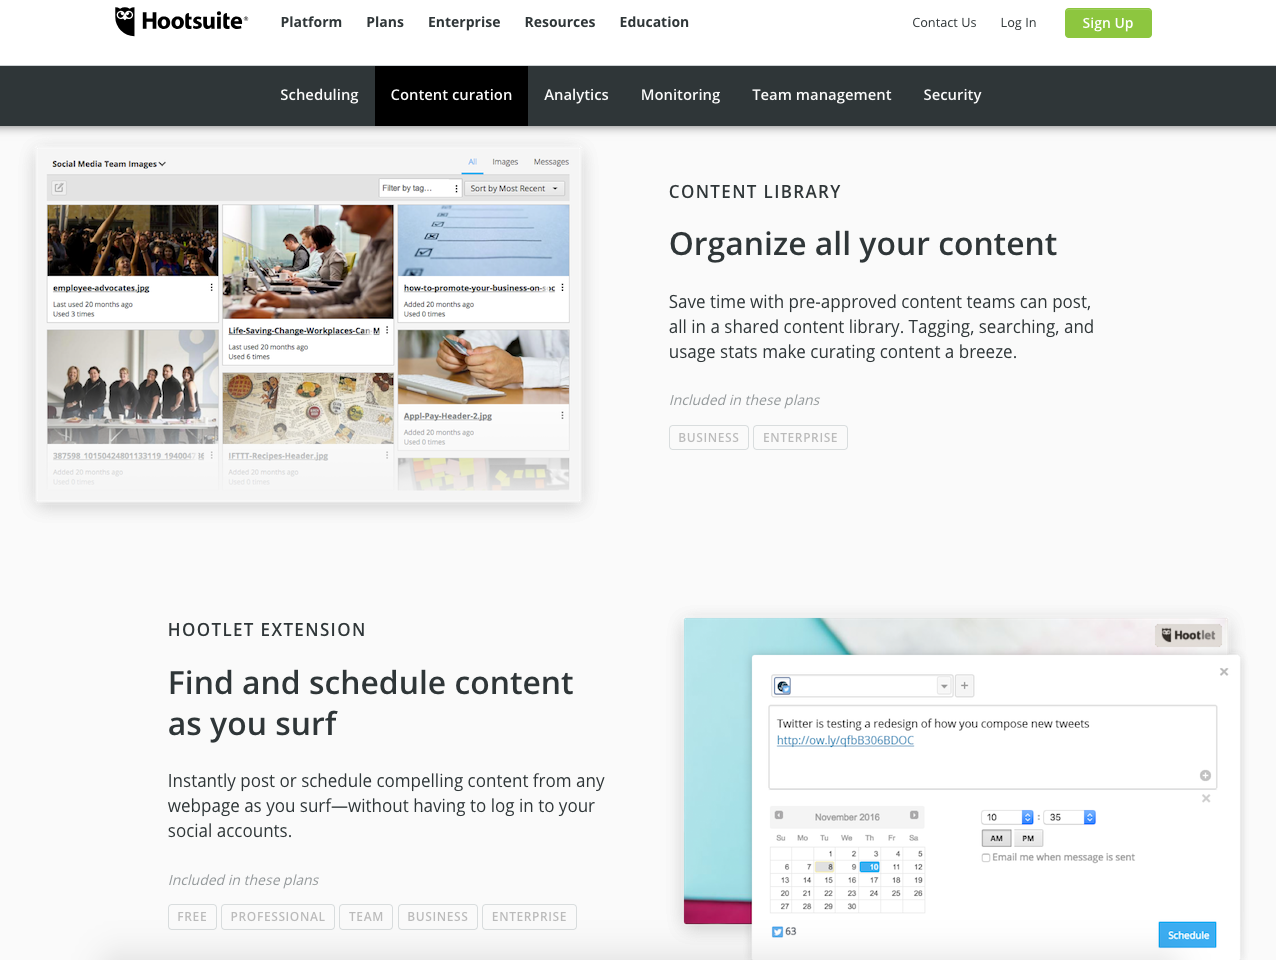 Screenshot of Hootsuite website